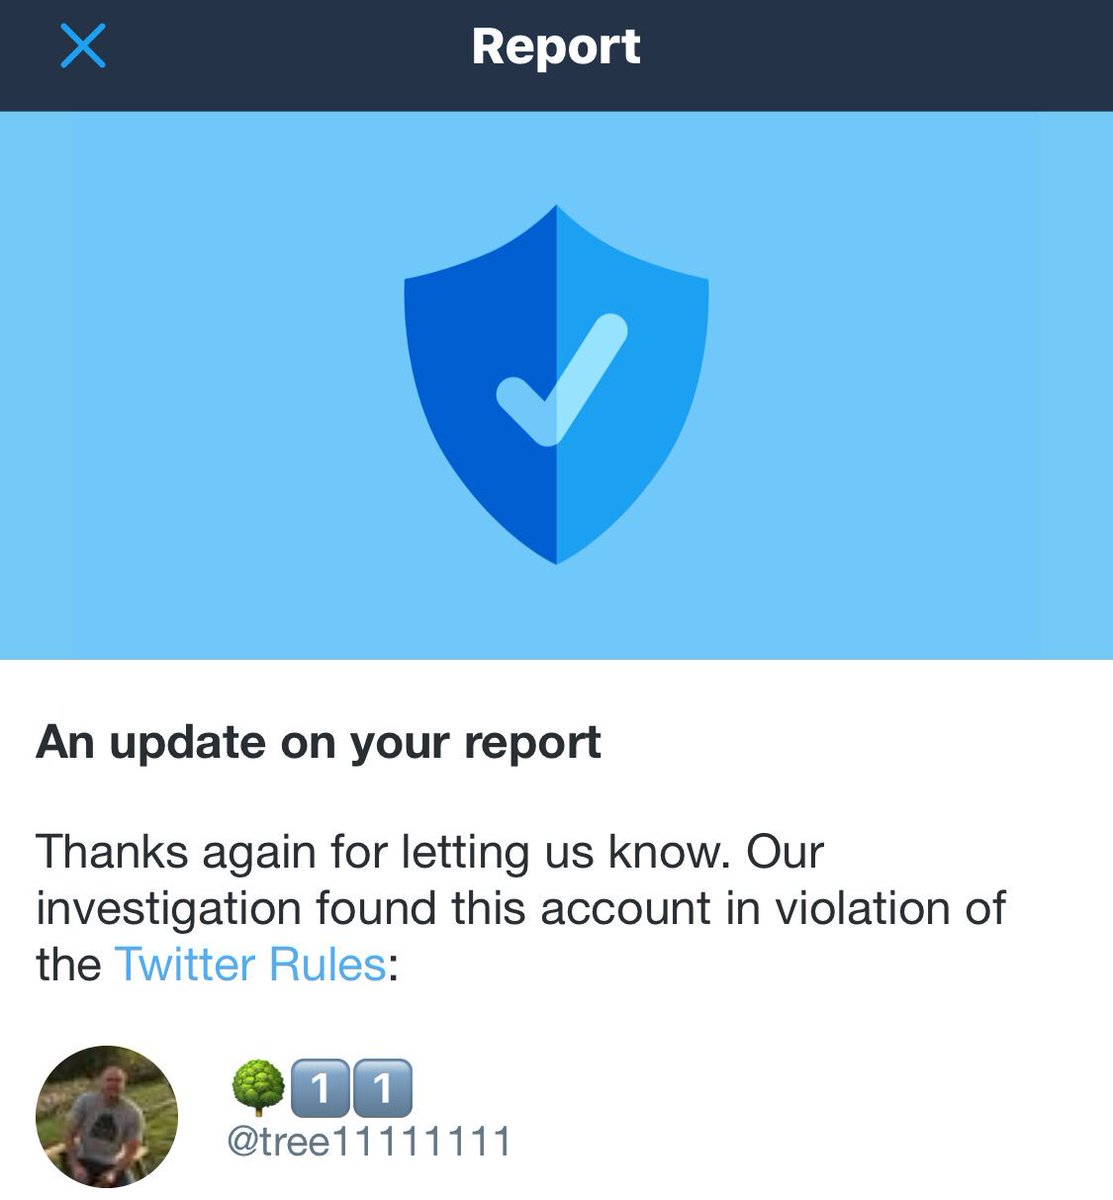 Keep reporting these #MAGA morons, Russian trolls & bots. We are winning!